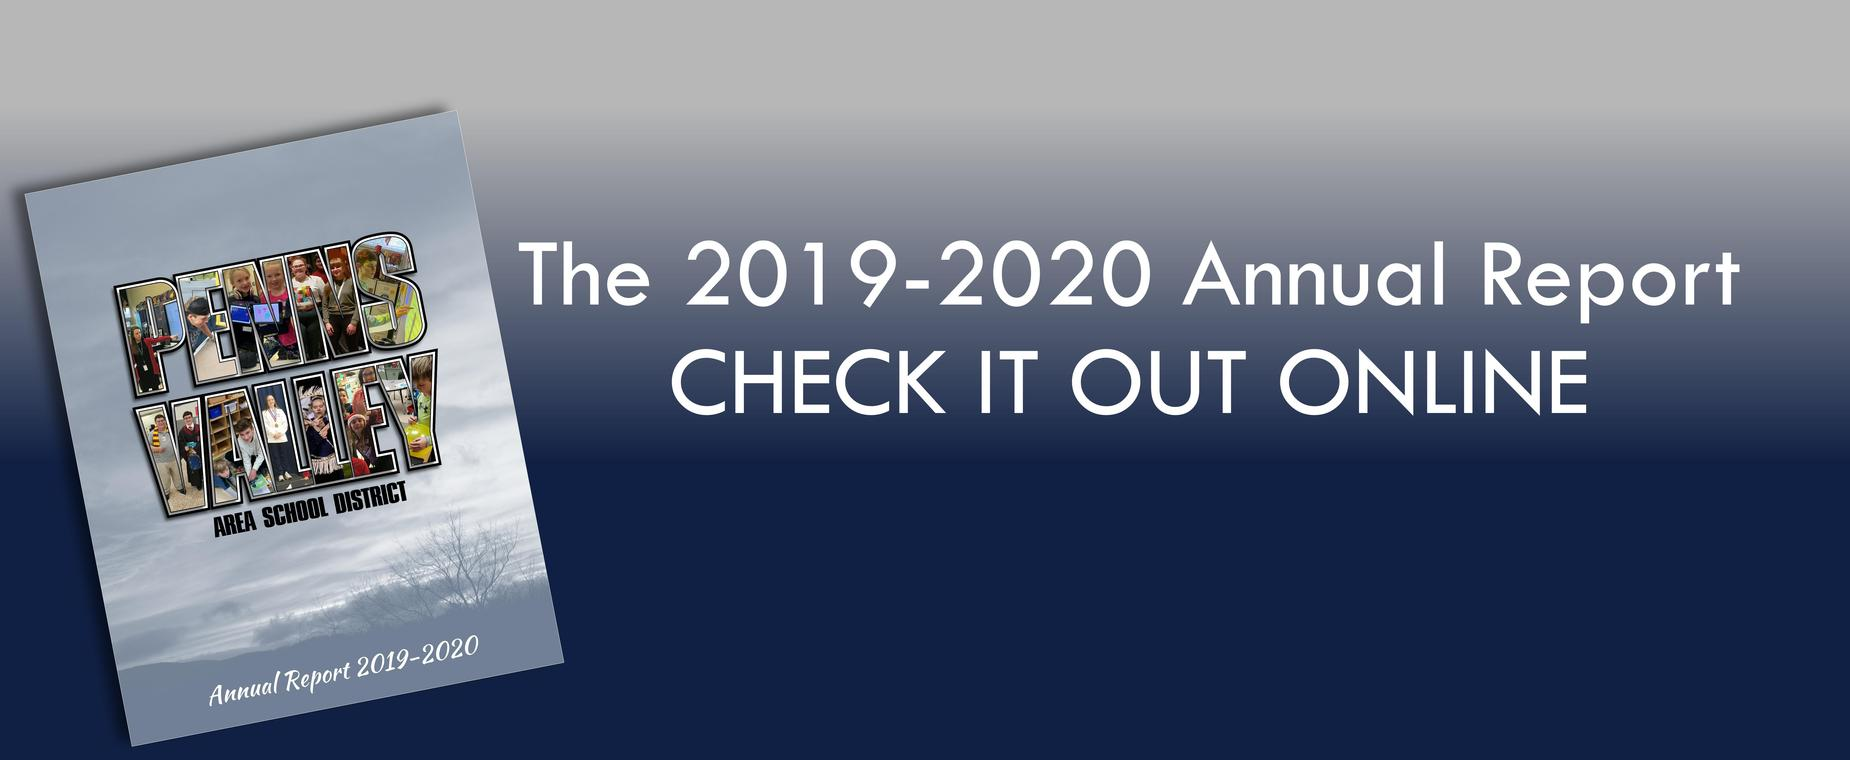 The 2019-20 Annual Report is now available